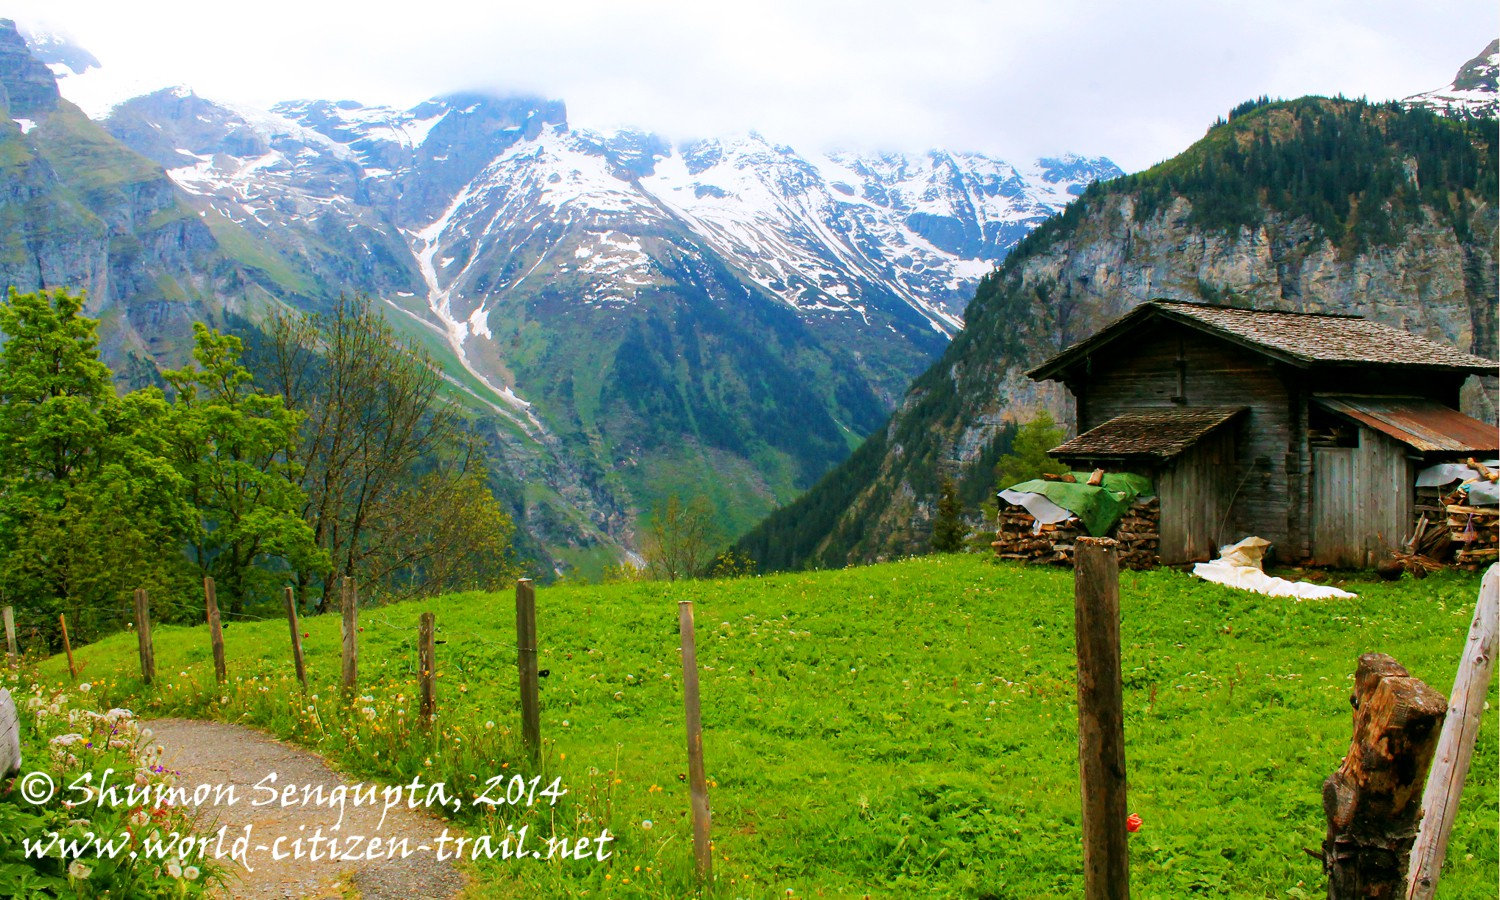 Murren to Gimmelwald: A Hike Through a Magical Land